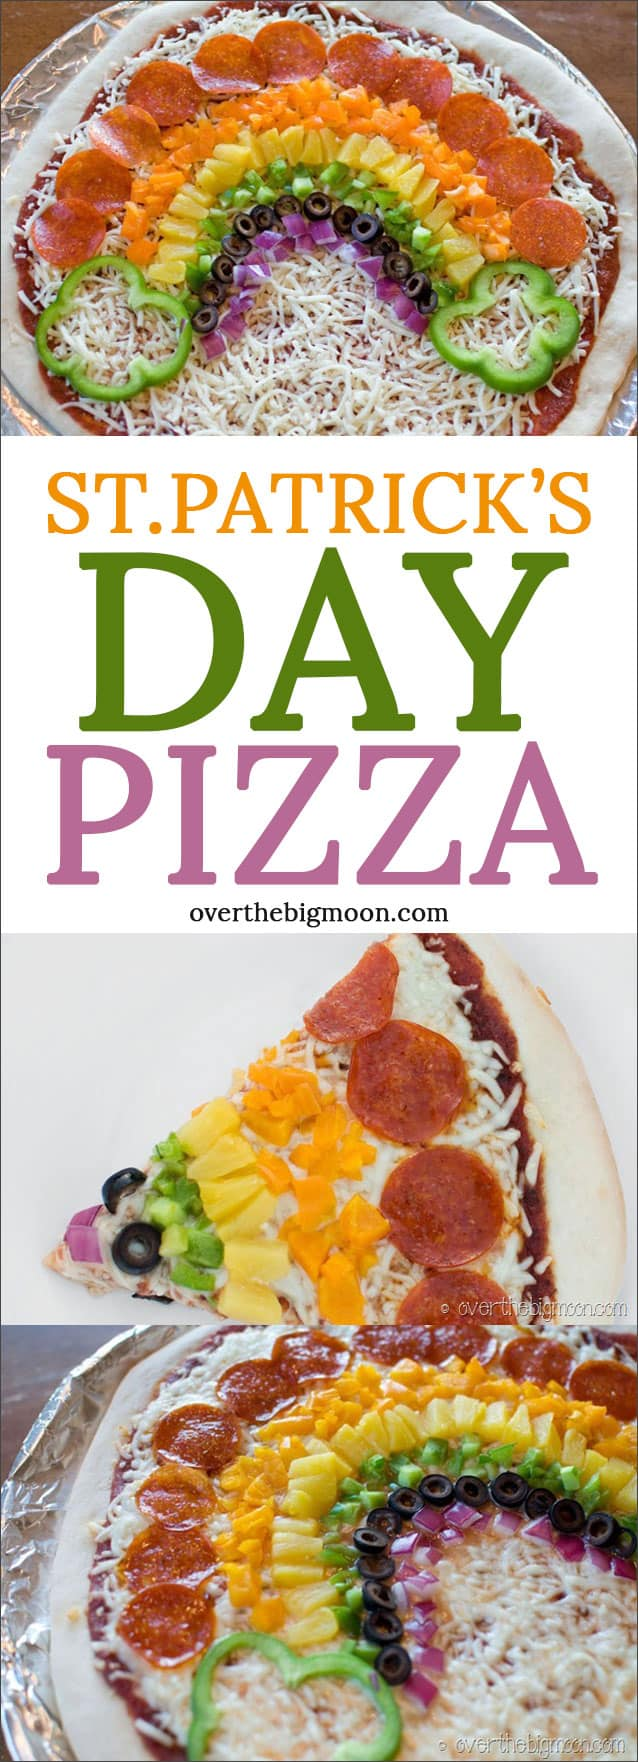 St. Patrick's Day Pizza -- this is an idea your whole family will love! Get the details at overthebigmoon.com!